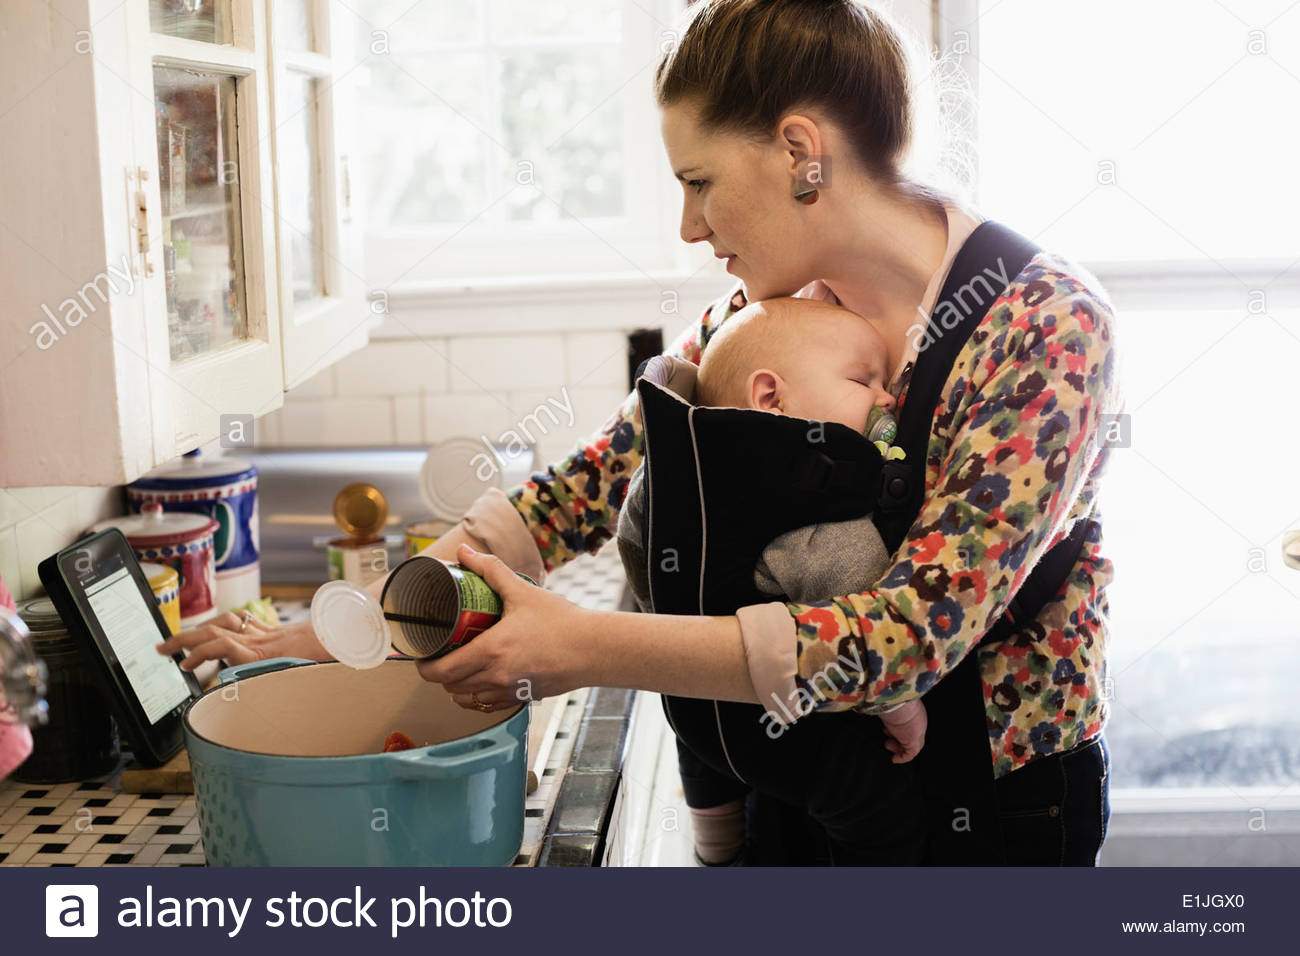 Mid adult mother with baby son in sling preparing food in kitchen - Stock Image